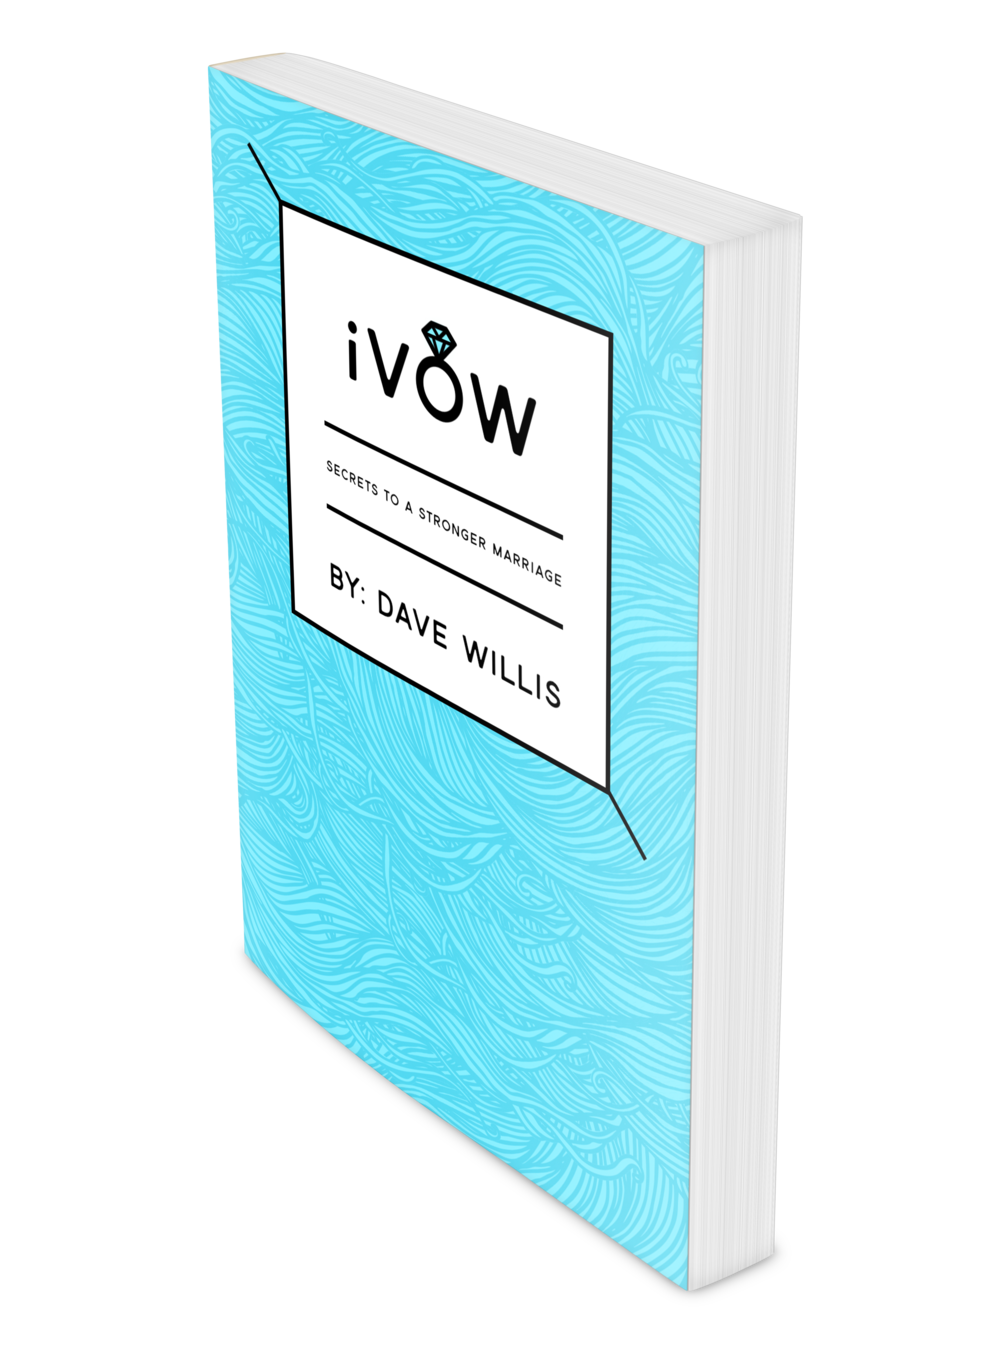 i-Vow - Ebook.png